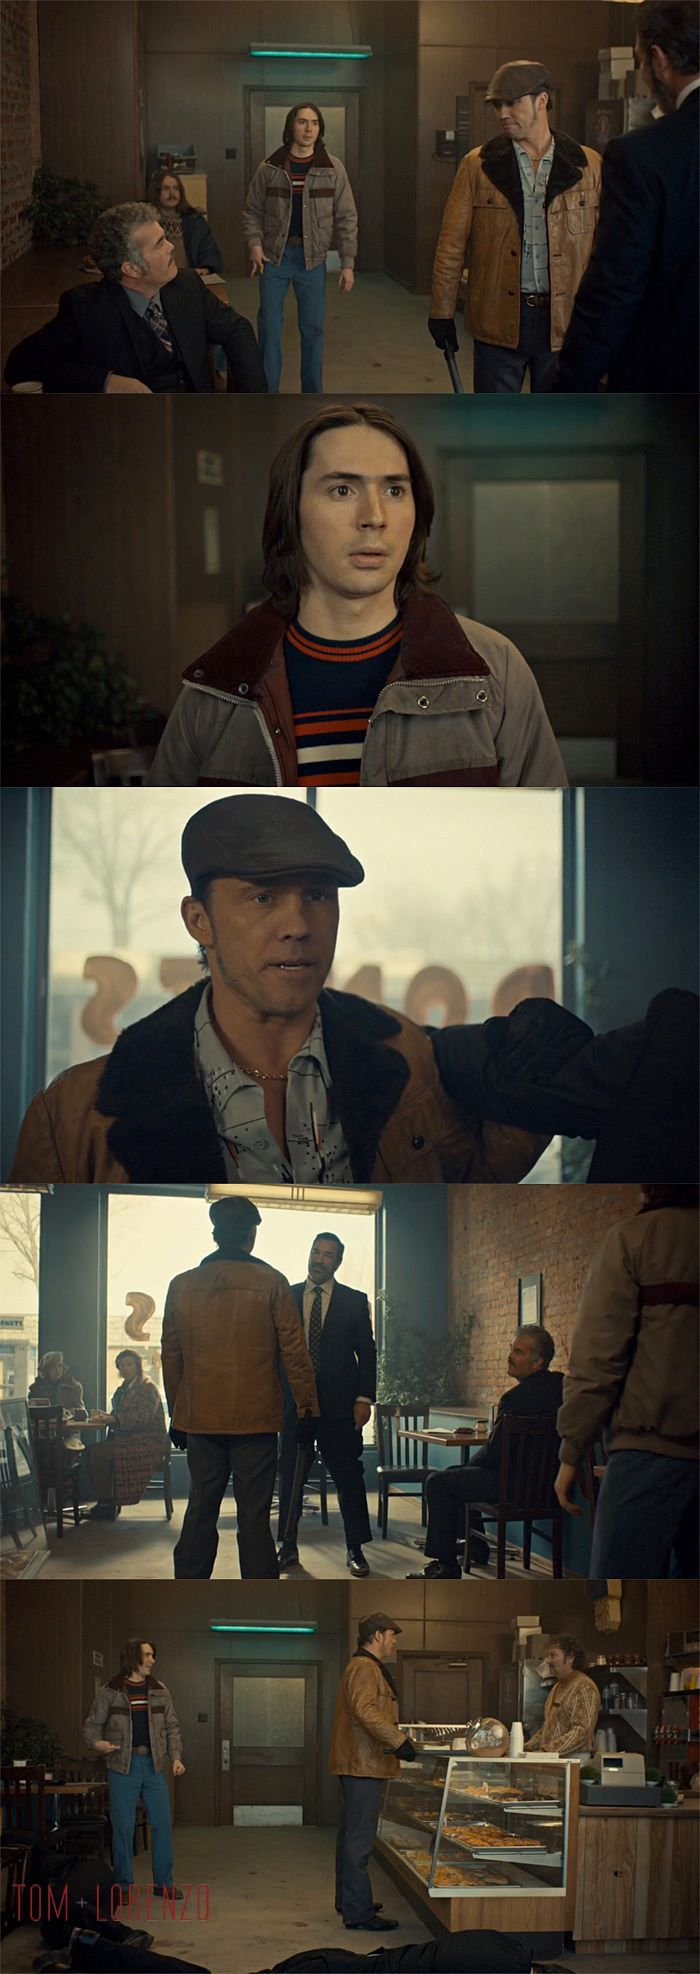 Fargo 'Fear and Trembling' Season 2 , Episode 4 | There is trouble at the Donut Shop and the the Native American henchman of the Gerhardt family and Floyd Gerhardt bring it.